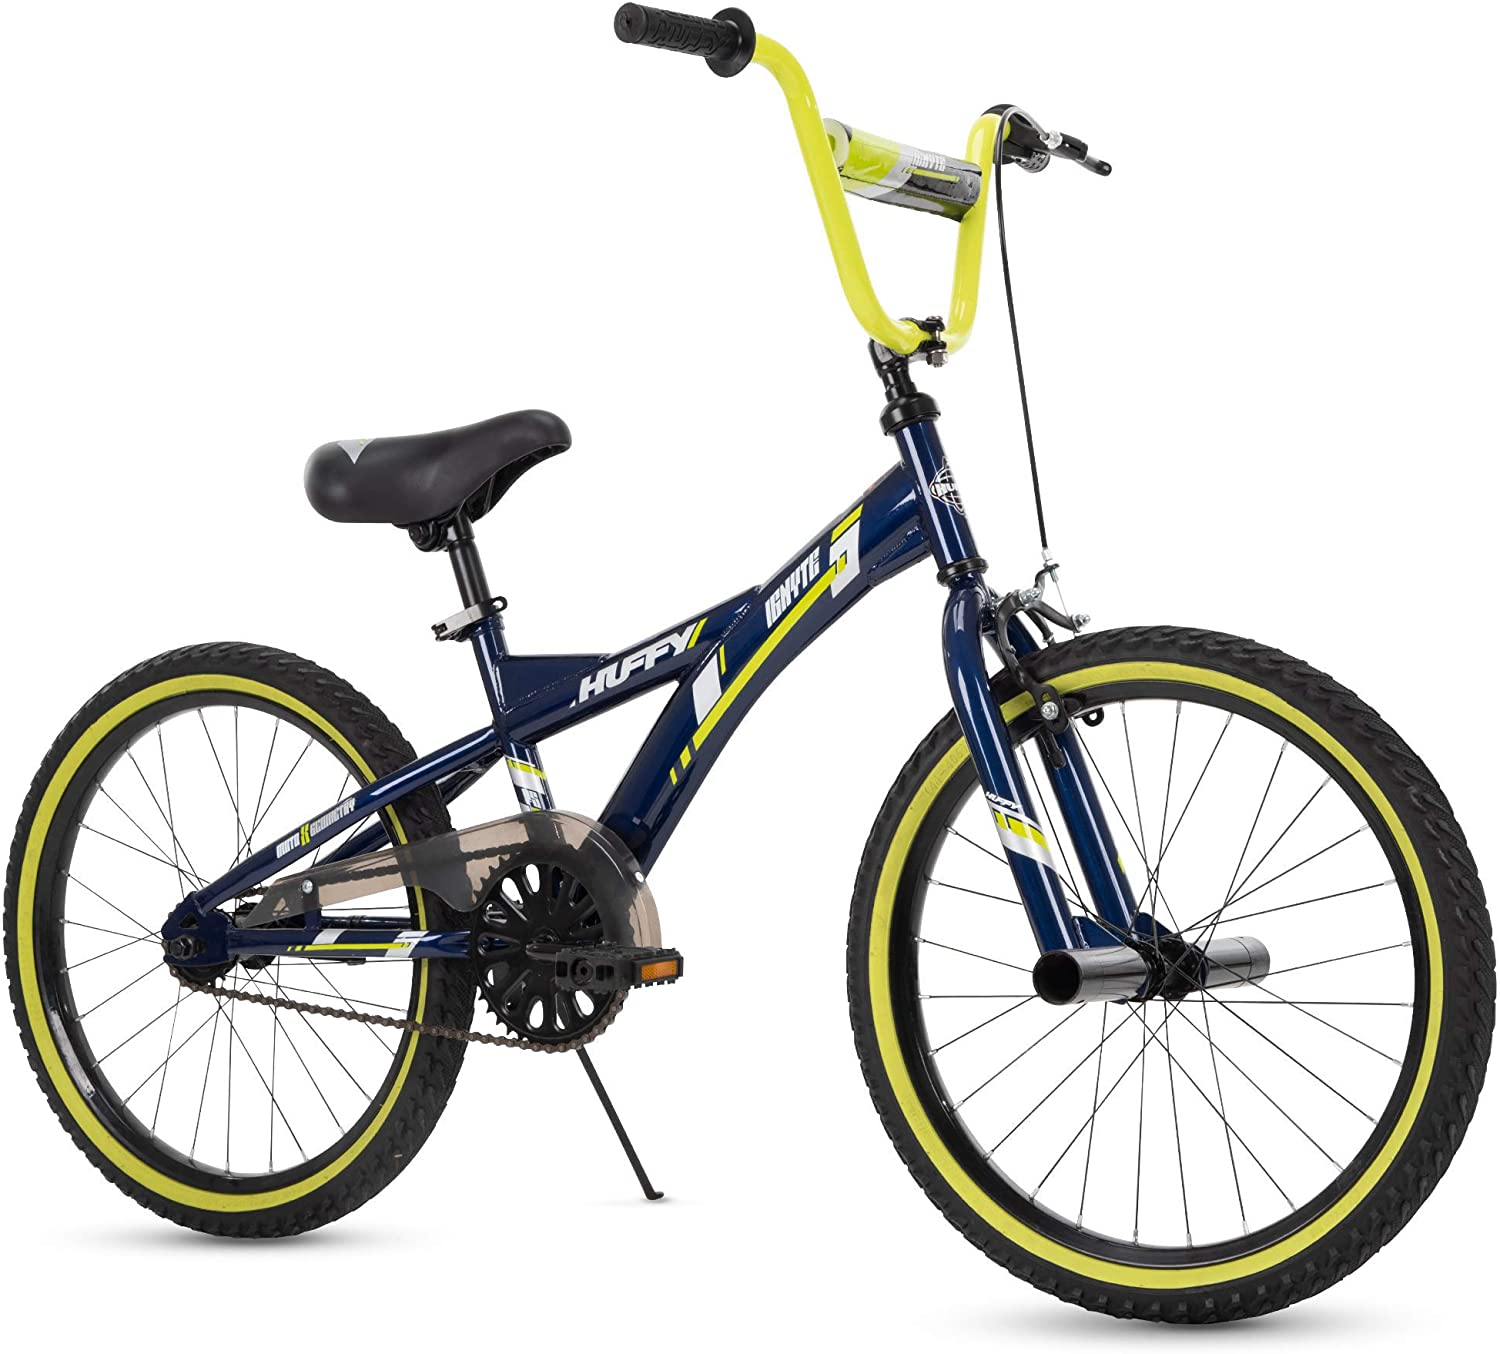 What are the Best Bikes For 3-Year-Olds